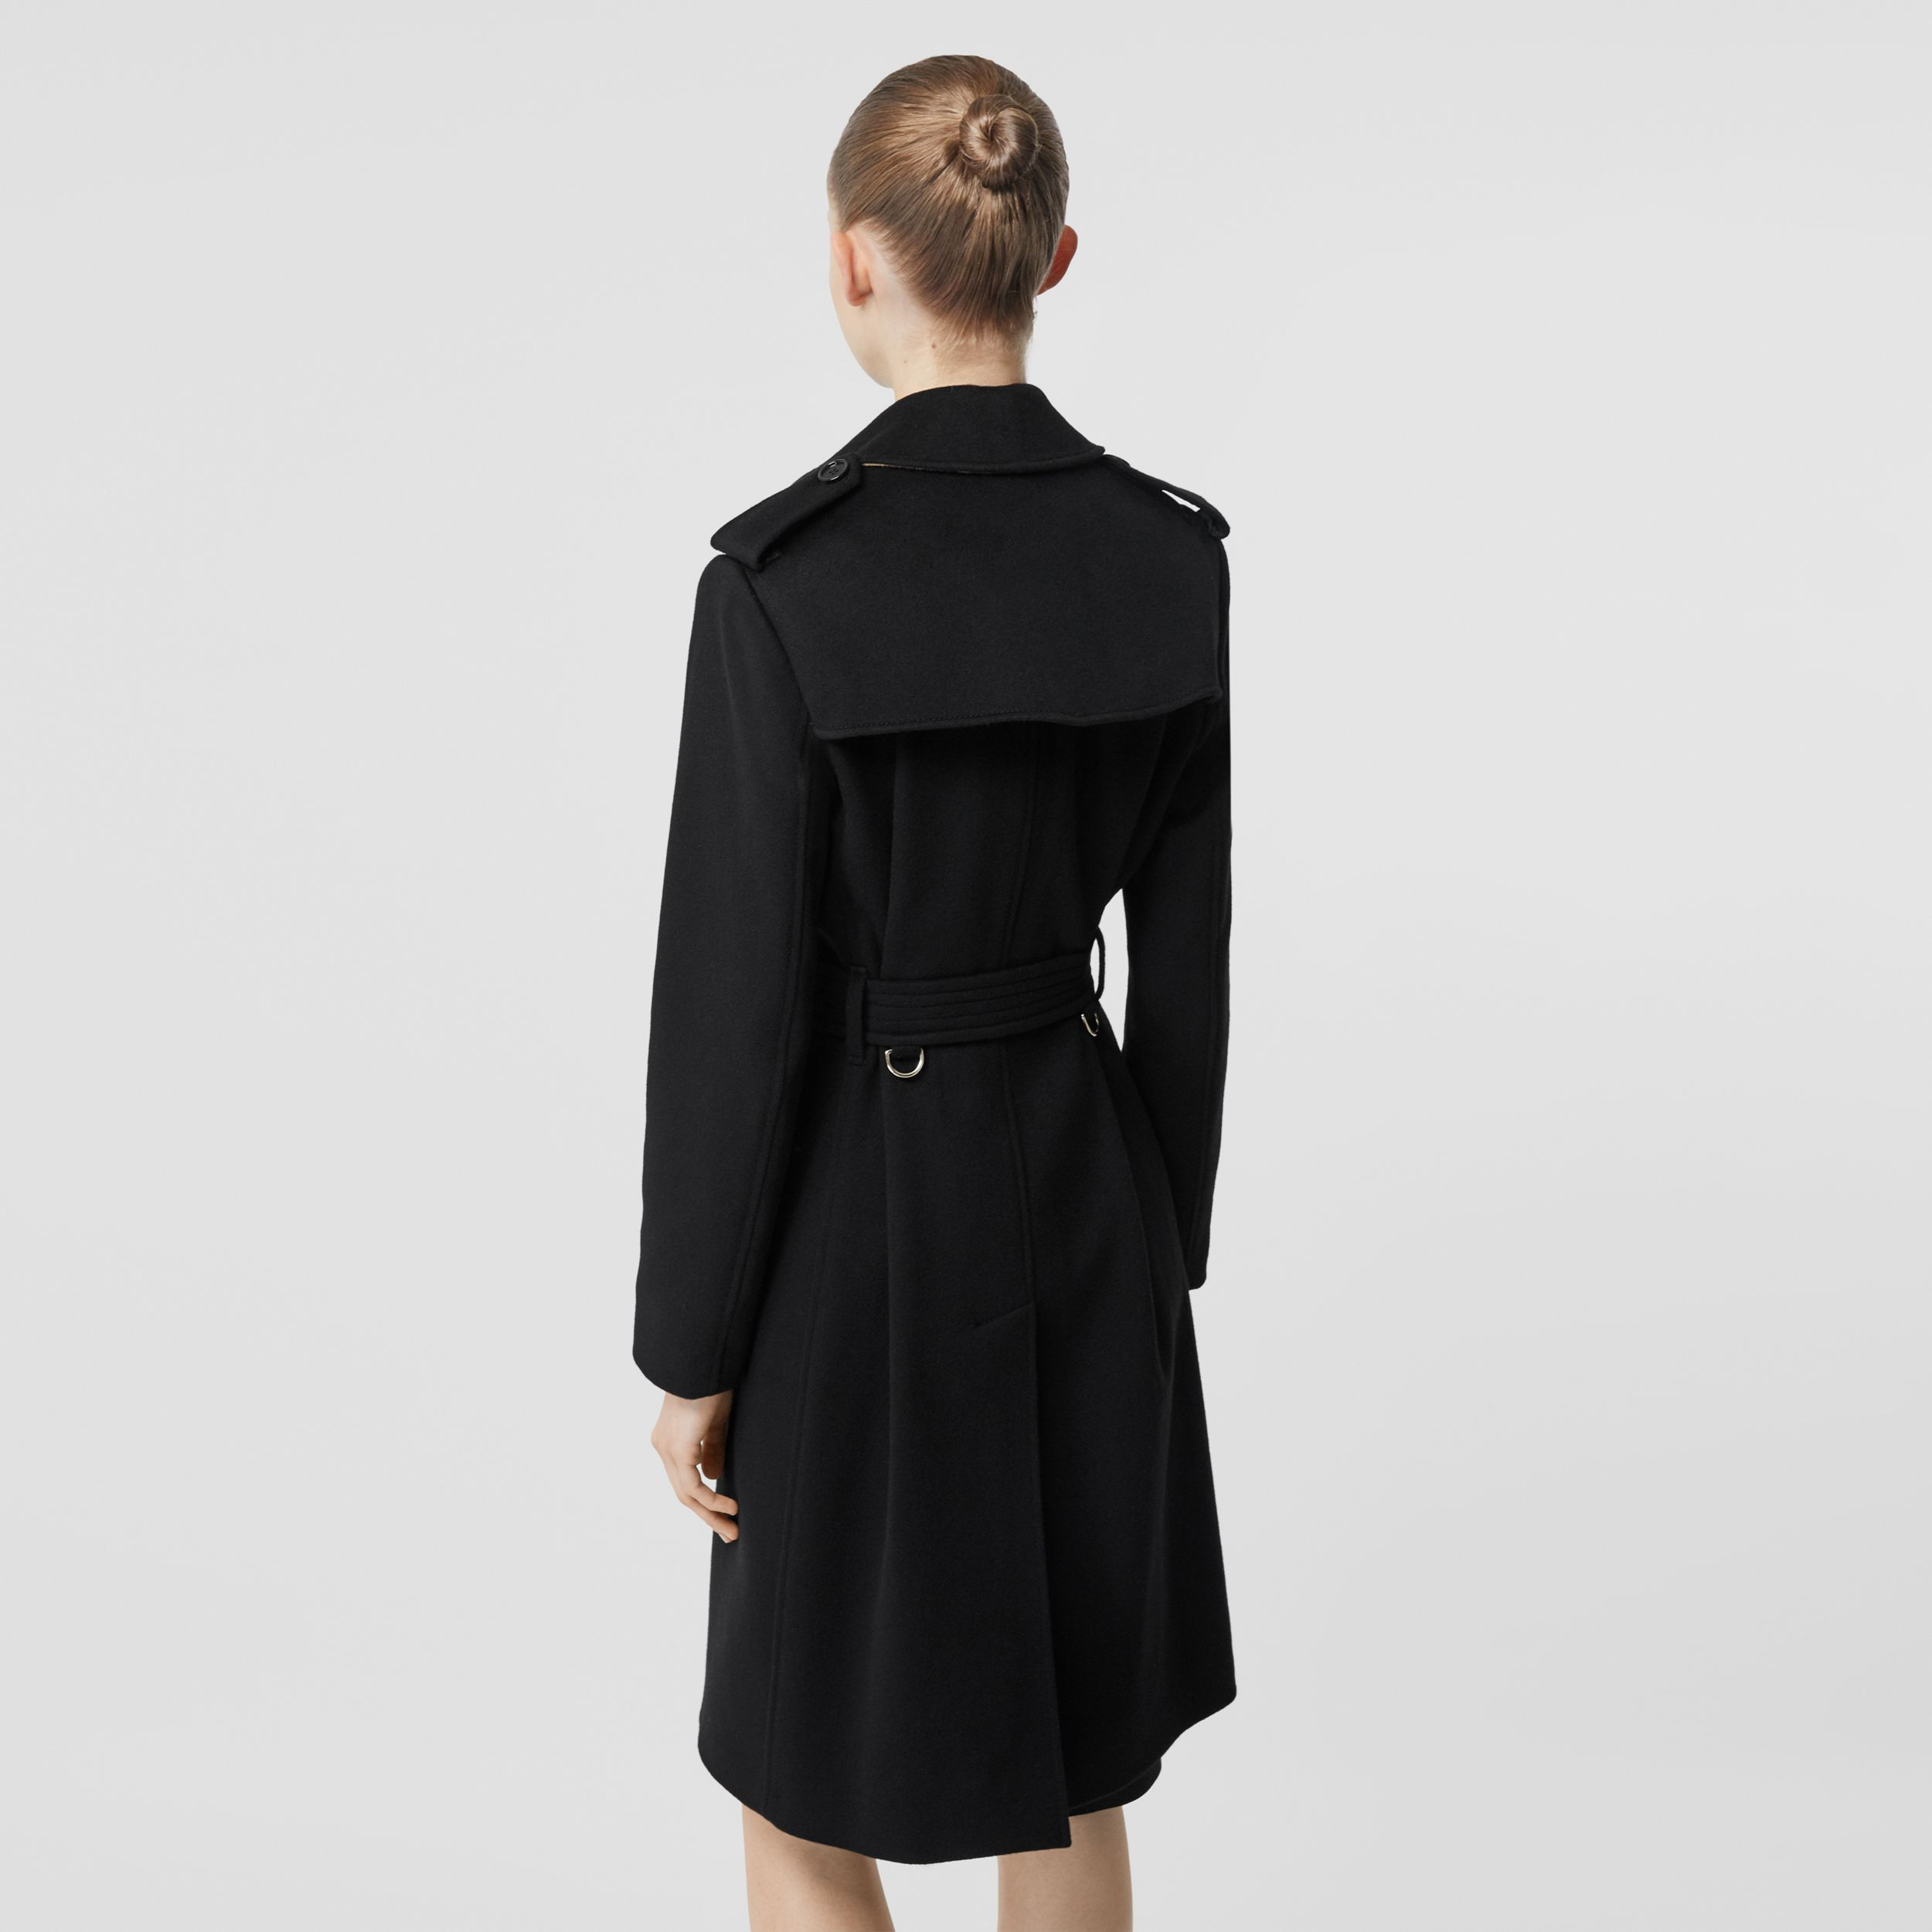 Cashmere Trench Coat in Black - Women | Burberry - 3